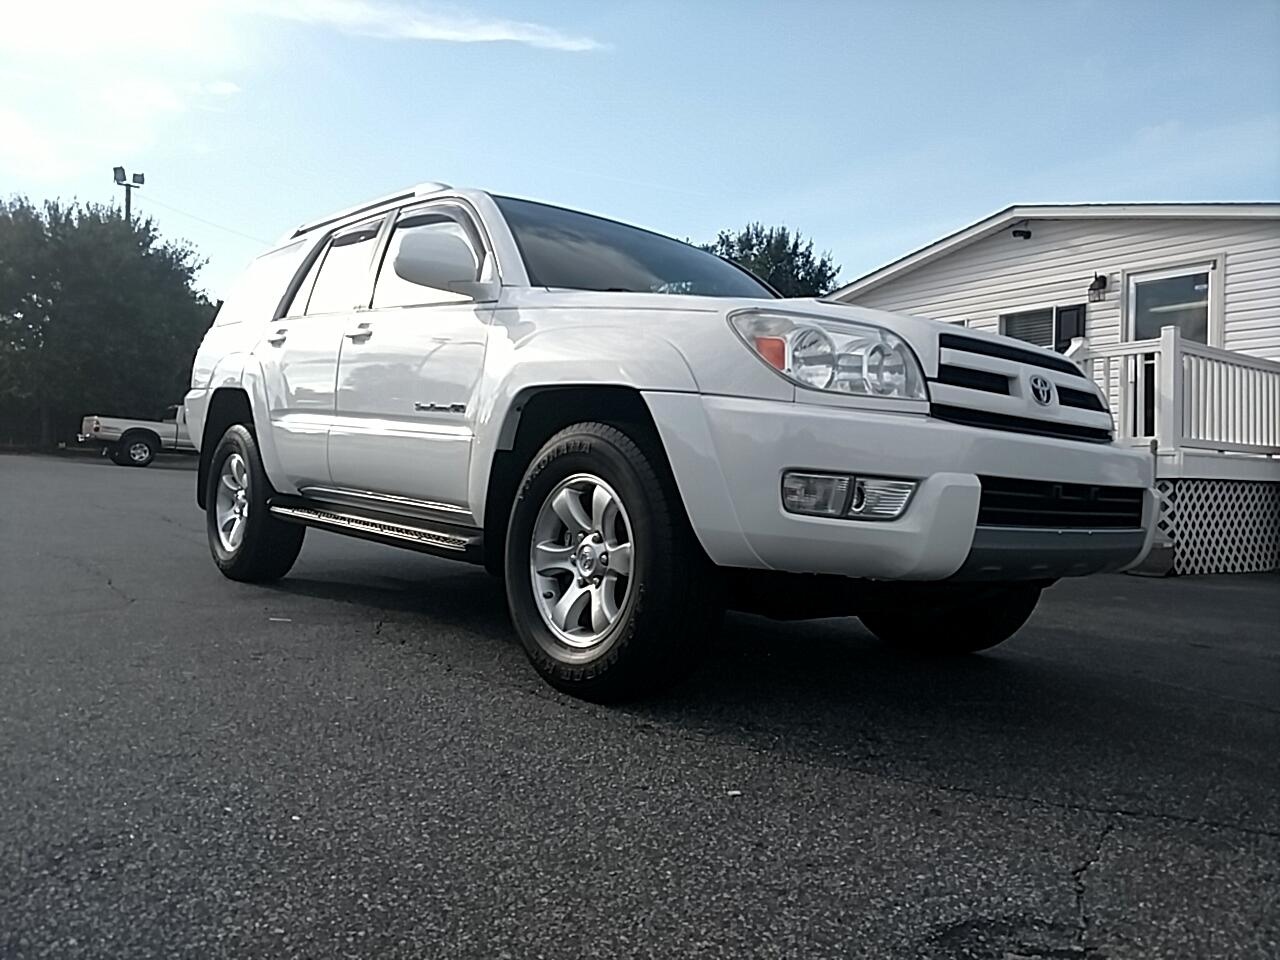 Buy Here Pay Here 2005 Toyota 4runner For Sale In Hickory Nc 28601